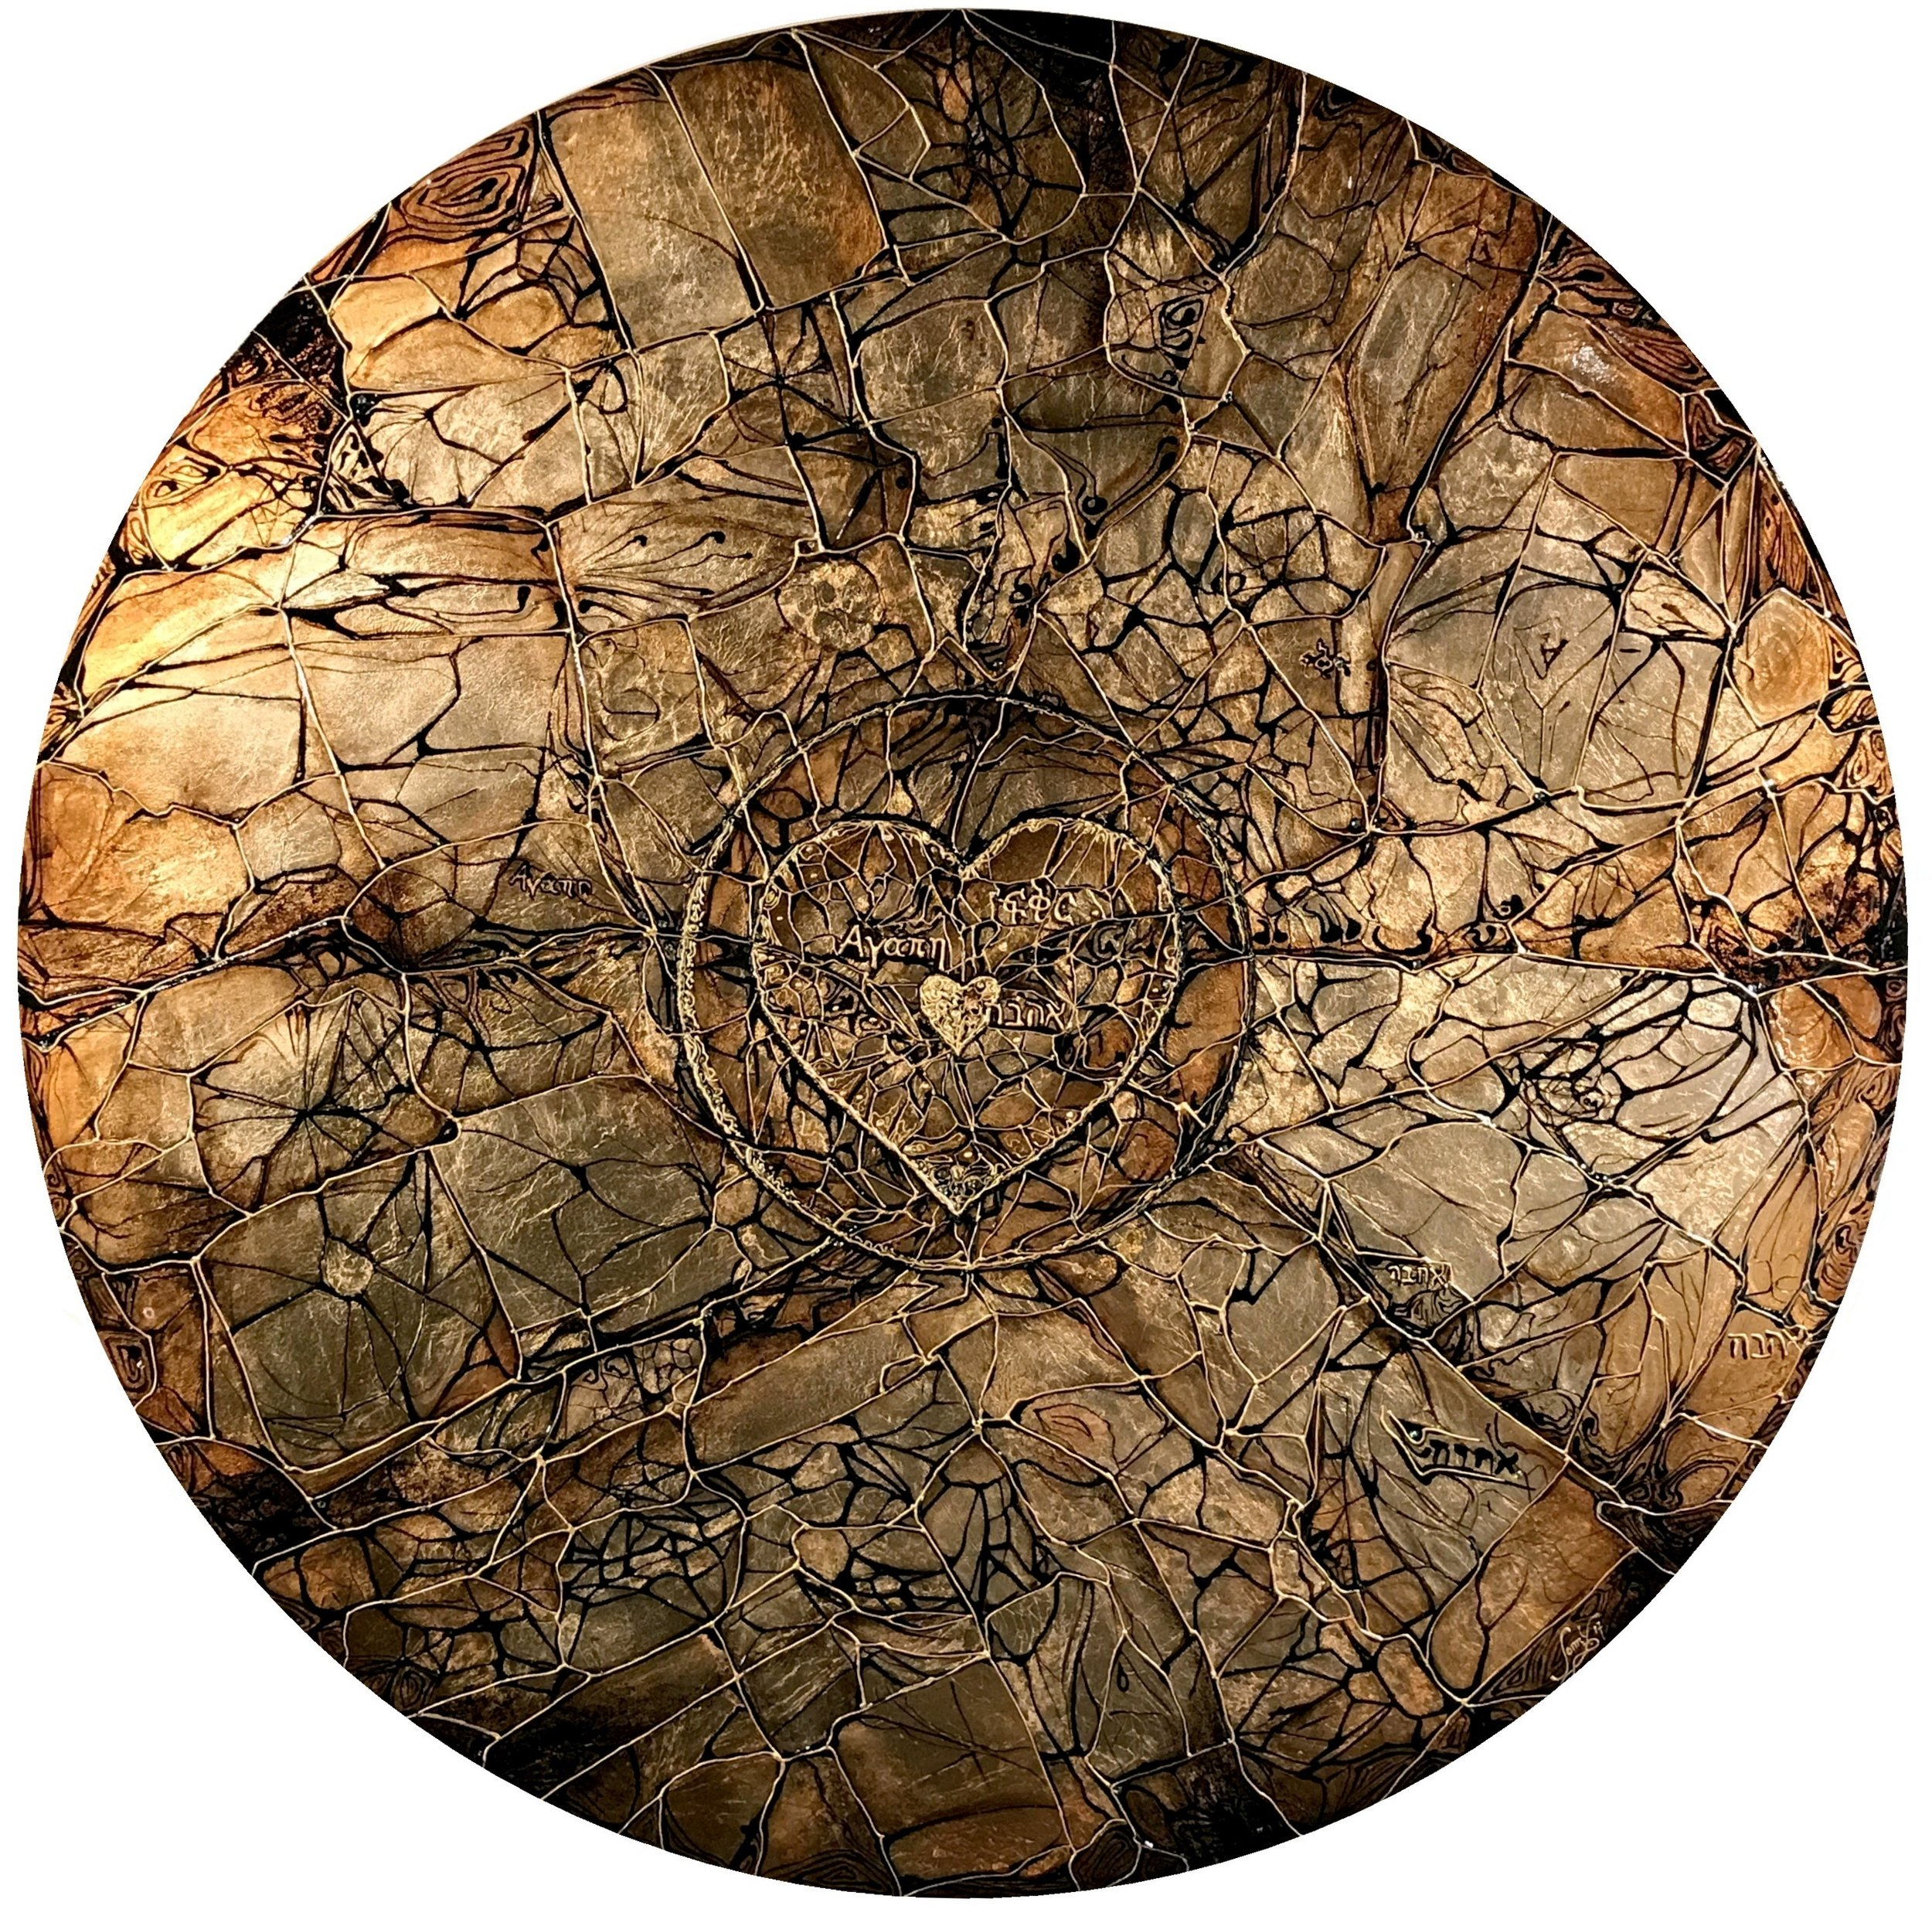 Living-Eye-Of-Life's-Collection-Nr.VI-Treasure-Map-by-Sonia-Domingues.JPG